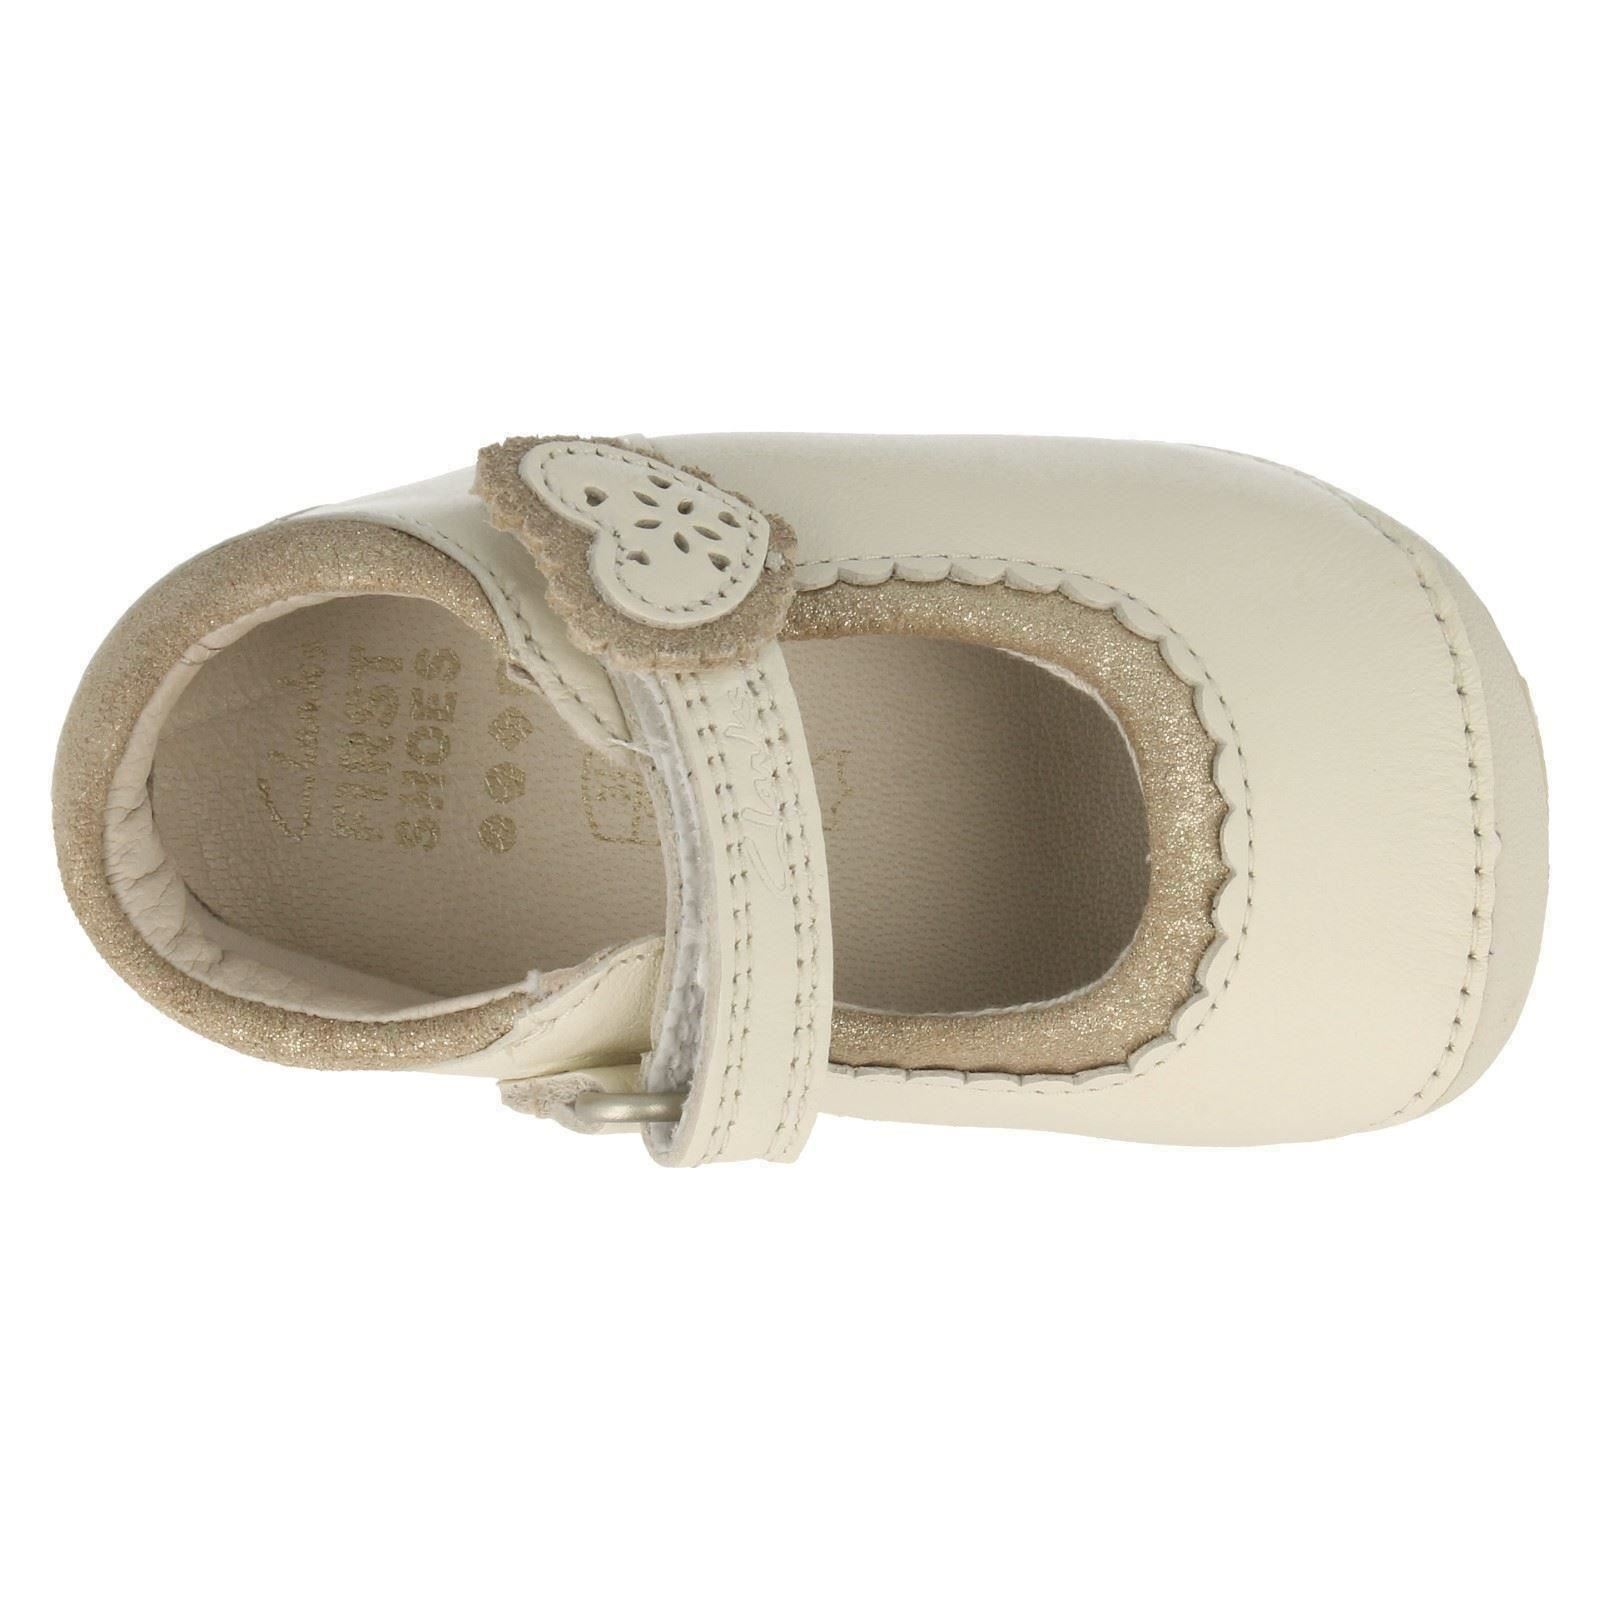 Girls Clarks First Shoes The Style - Ida Heart